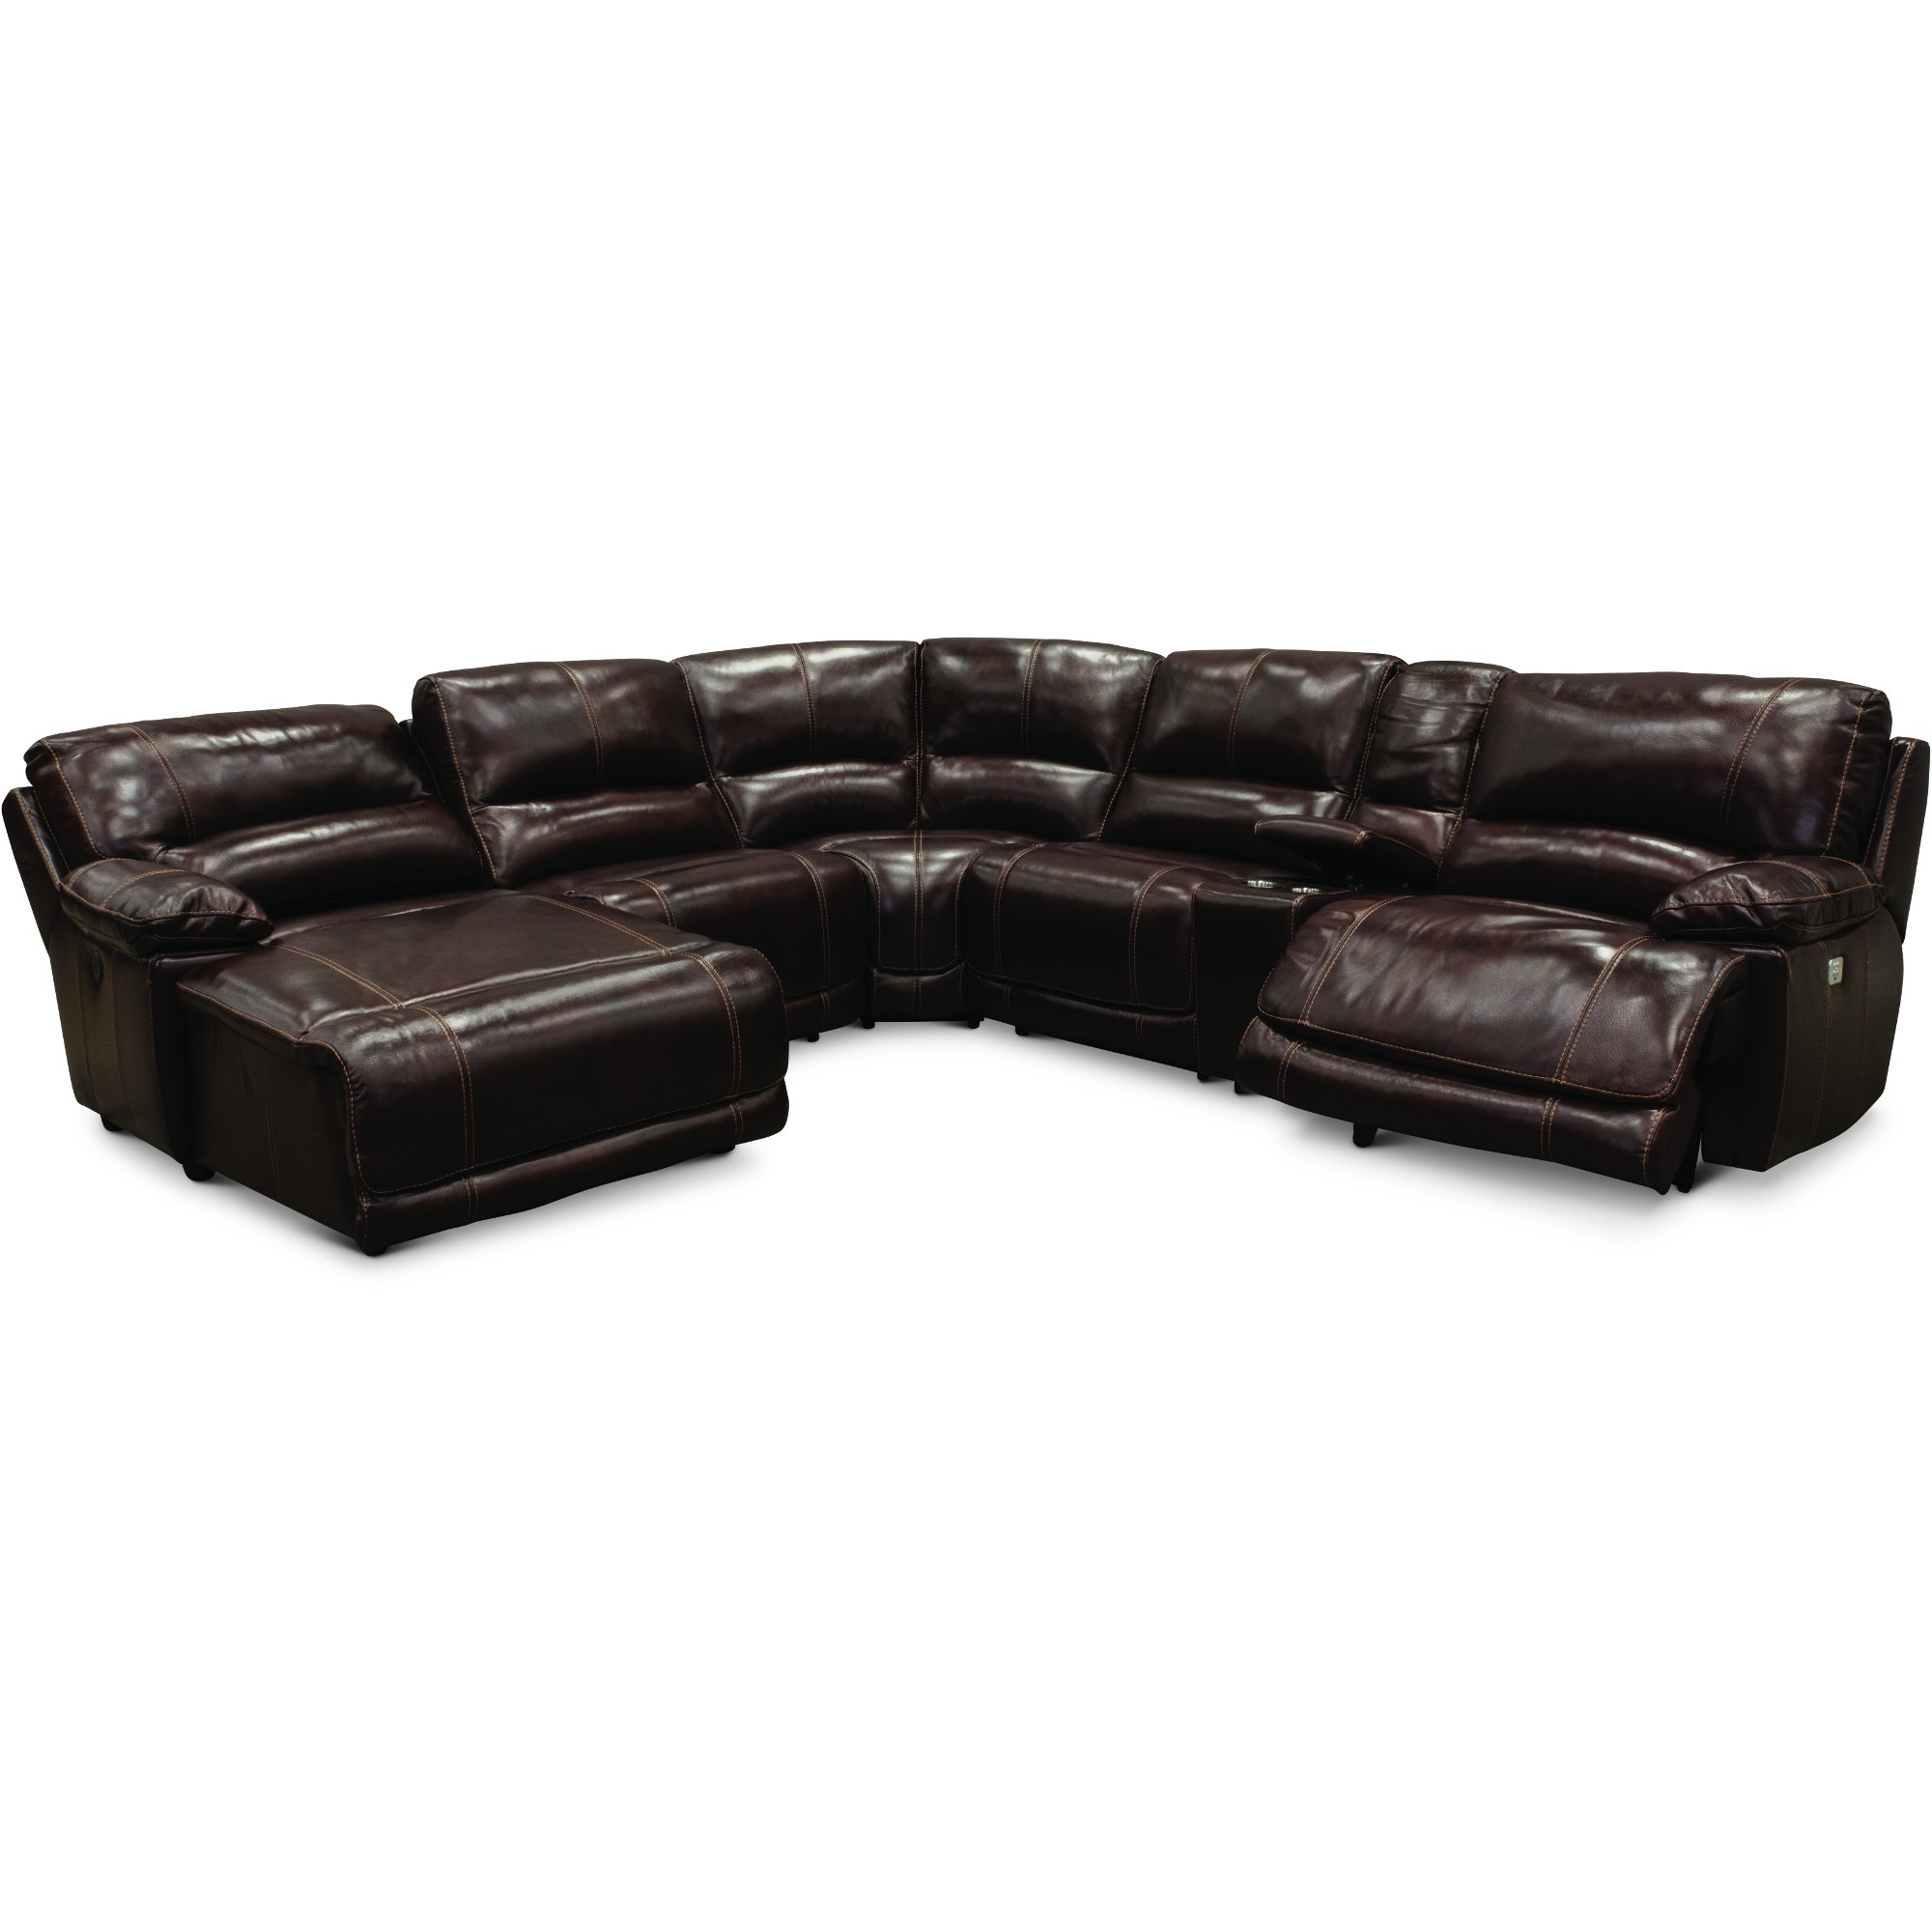 Most Recently Released Jackson 6 Piece Power Reclining Sectionals With Sleeper Within Burgundy Leather Match Power Reclining Sectional Sofa – Brant (View 4 of 20)